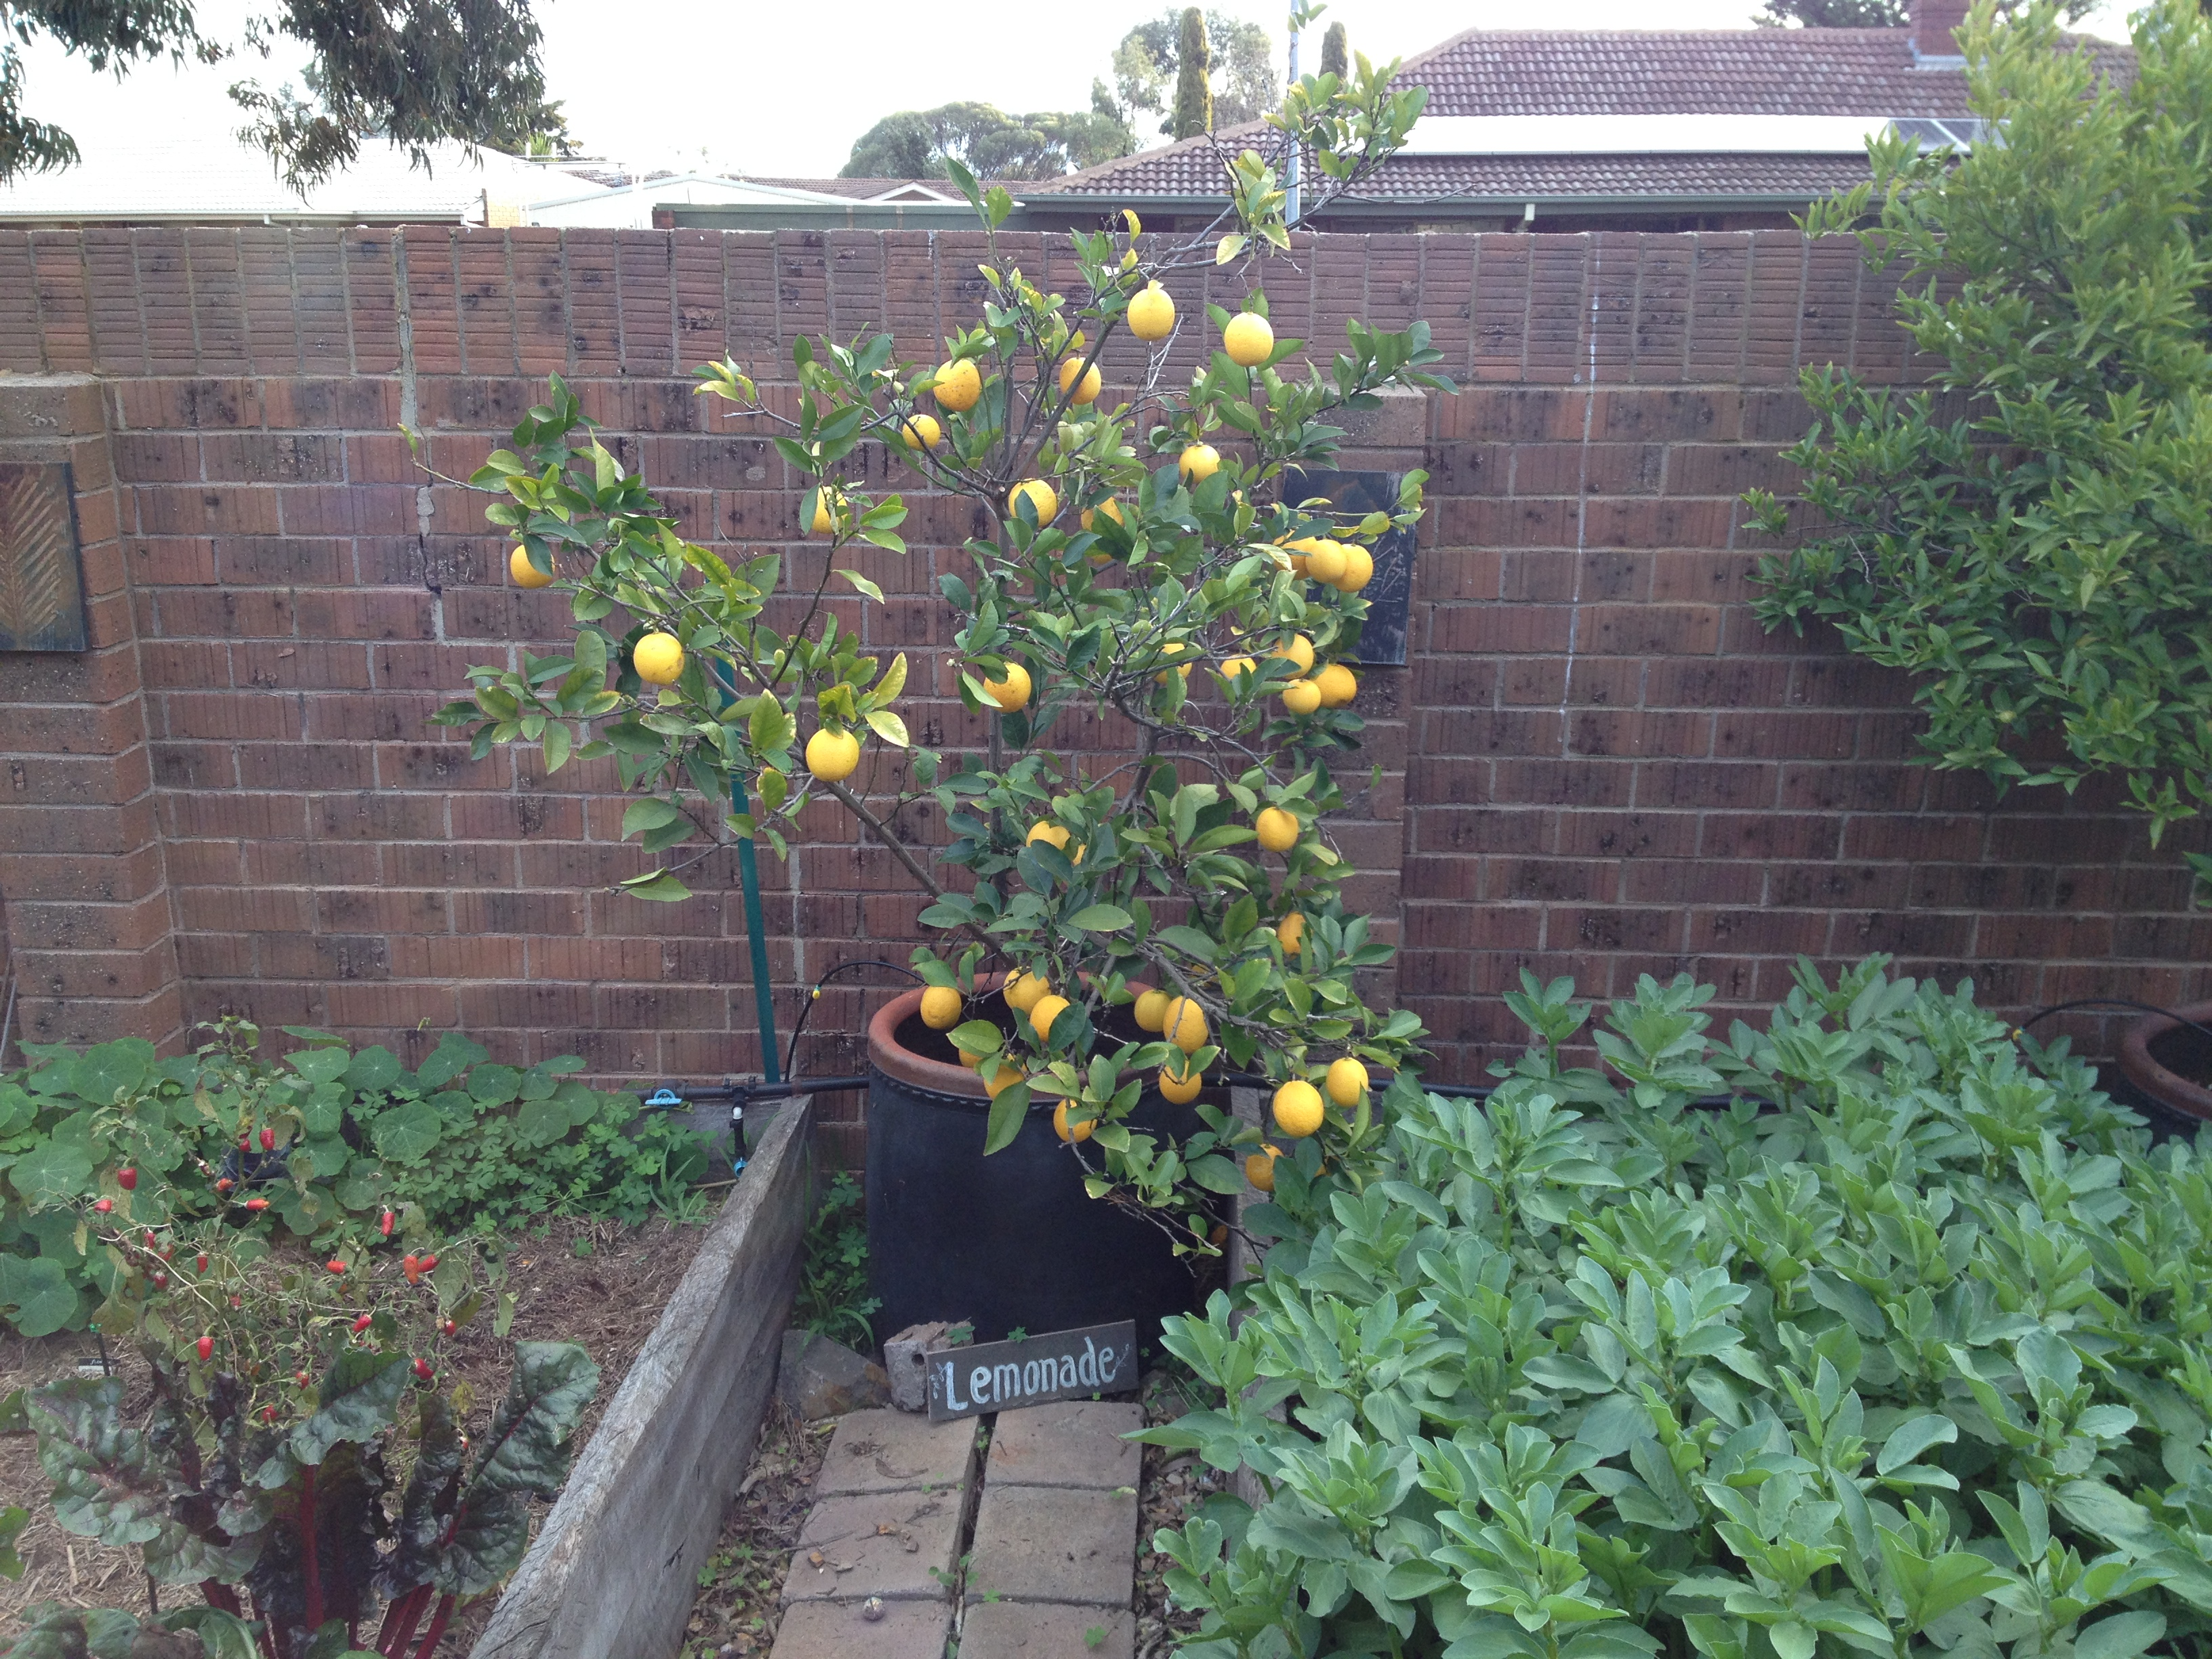 100 planting fruit trees in winter summer citrus growth brings autumn harvest mississippi - Planting fruit trees in autumn ...